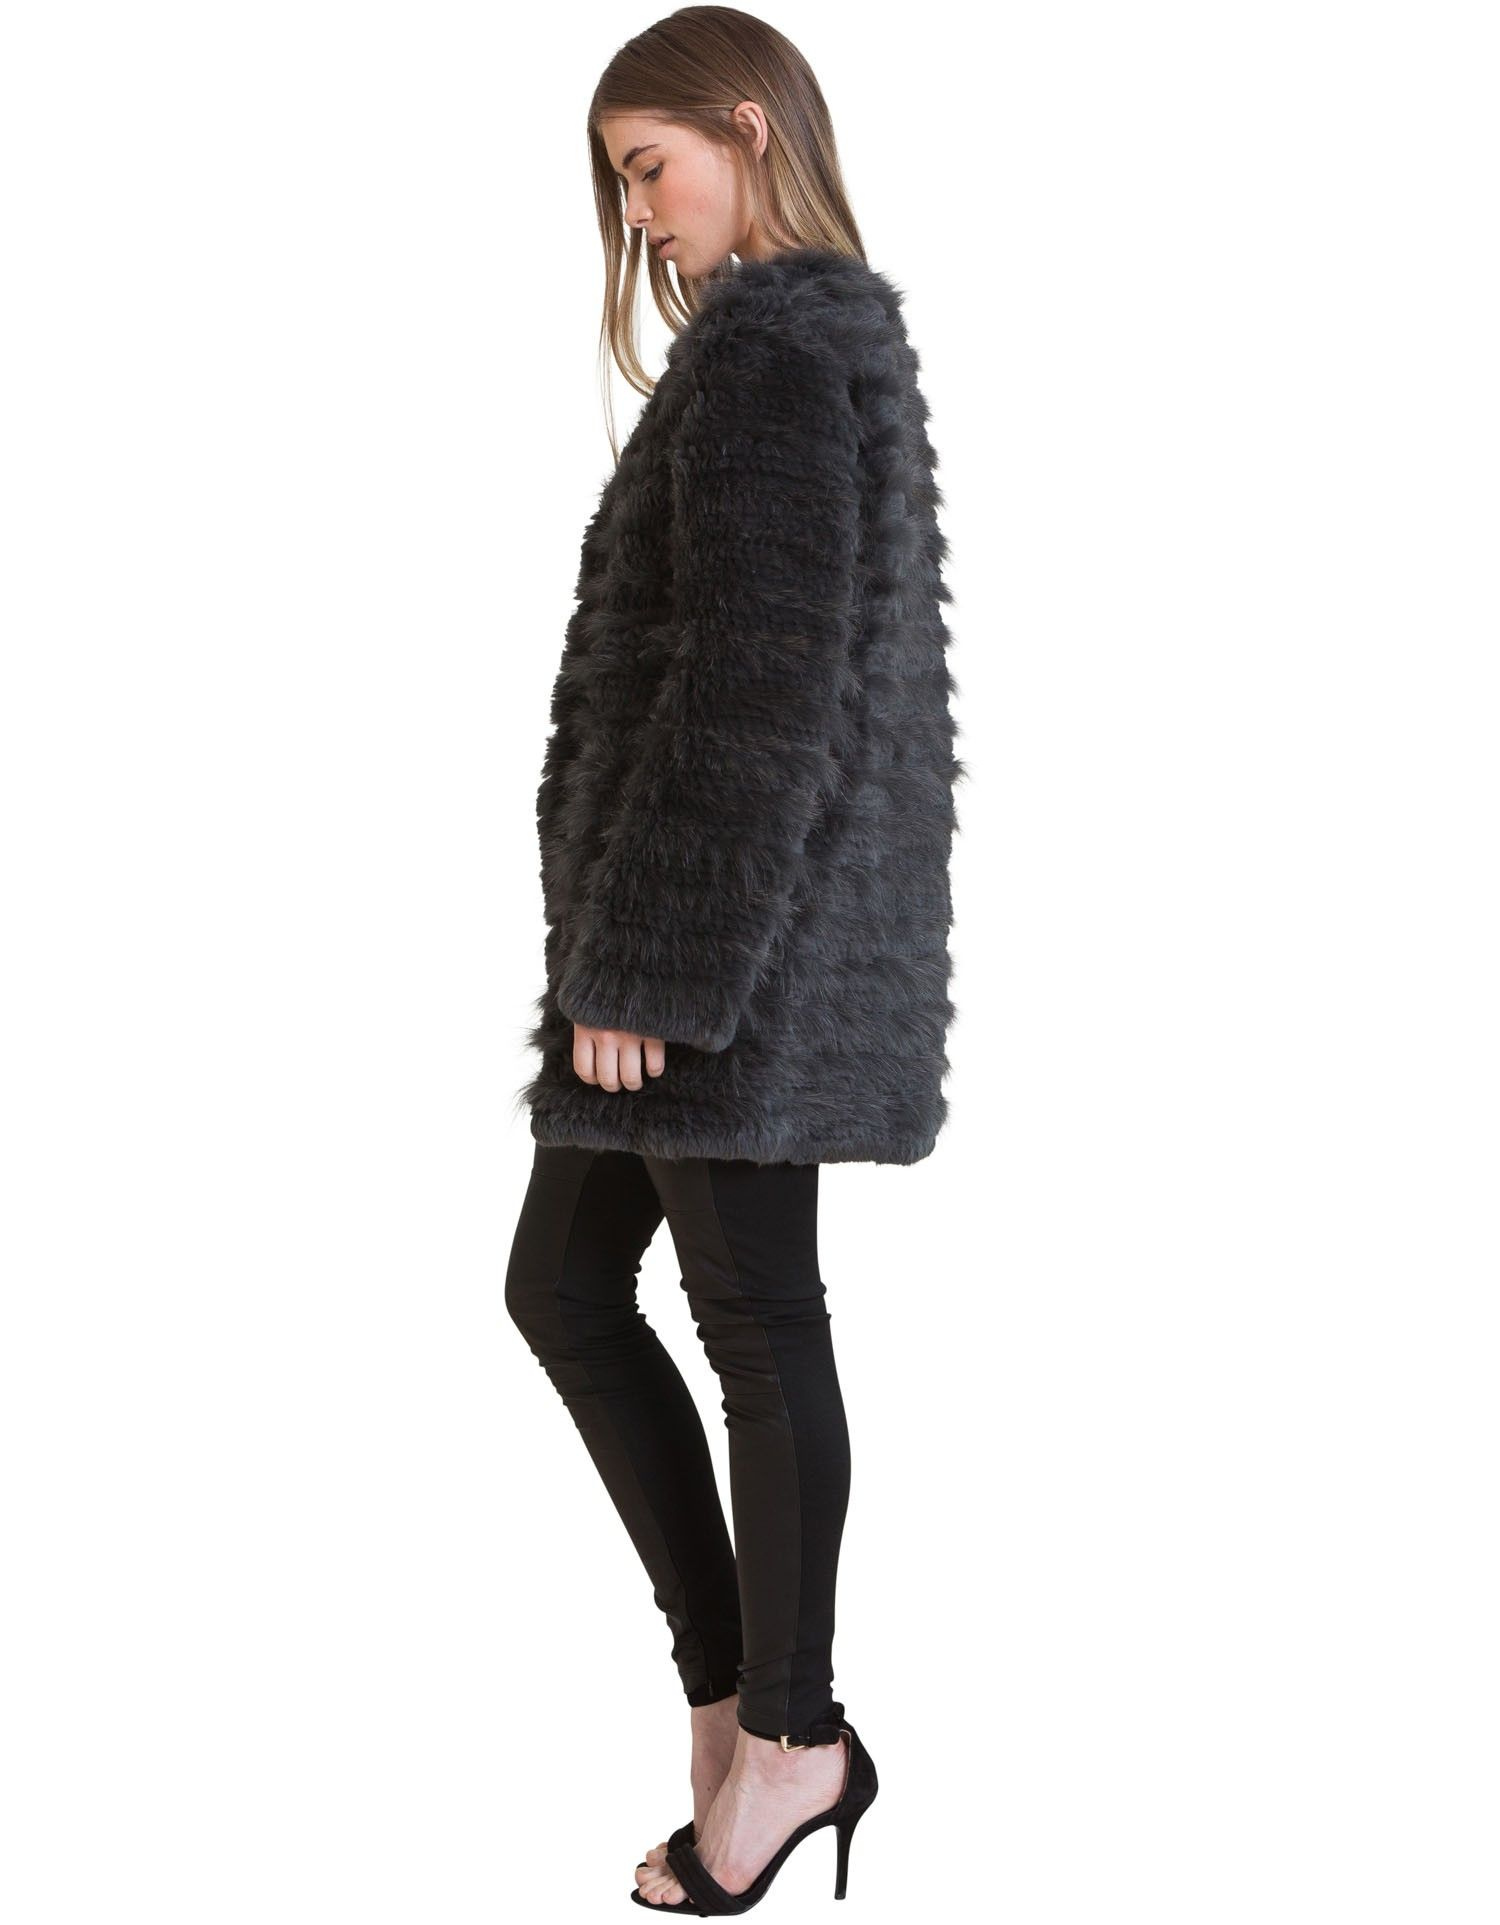 jophiel more than a feeling jacket. looks soo warm and comfy